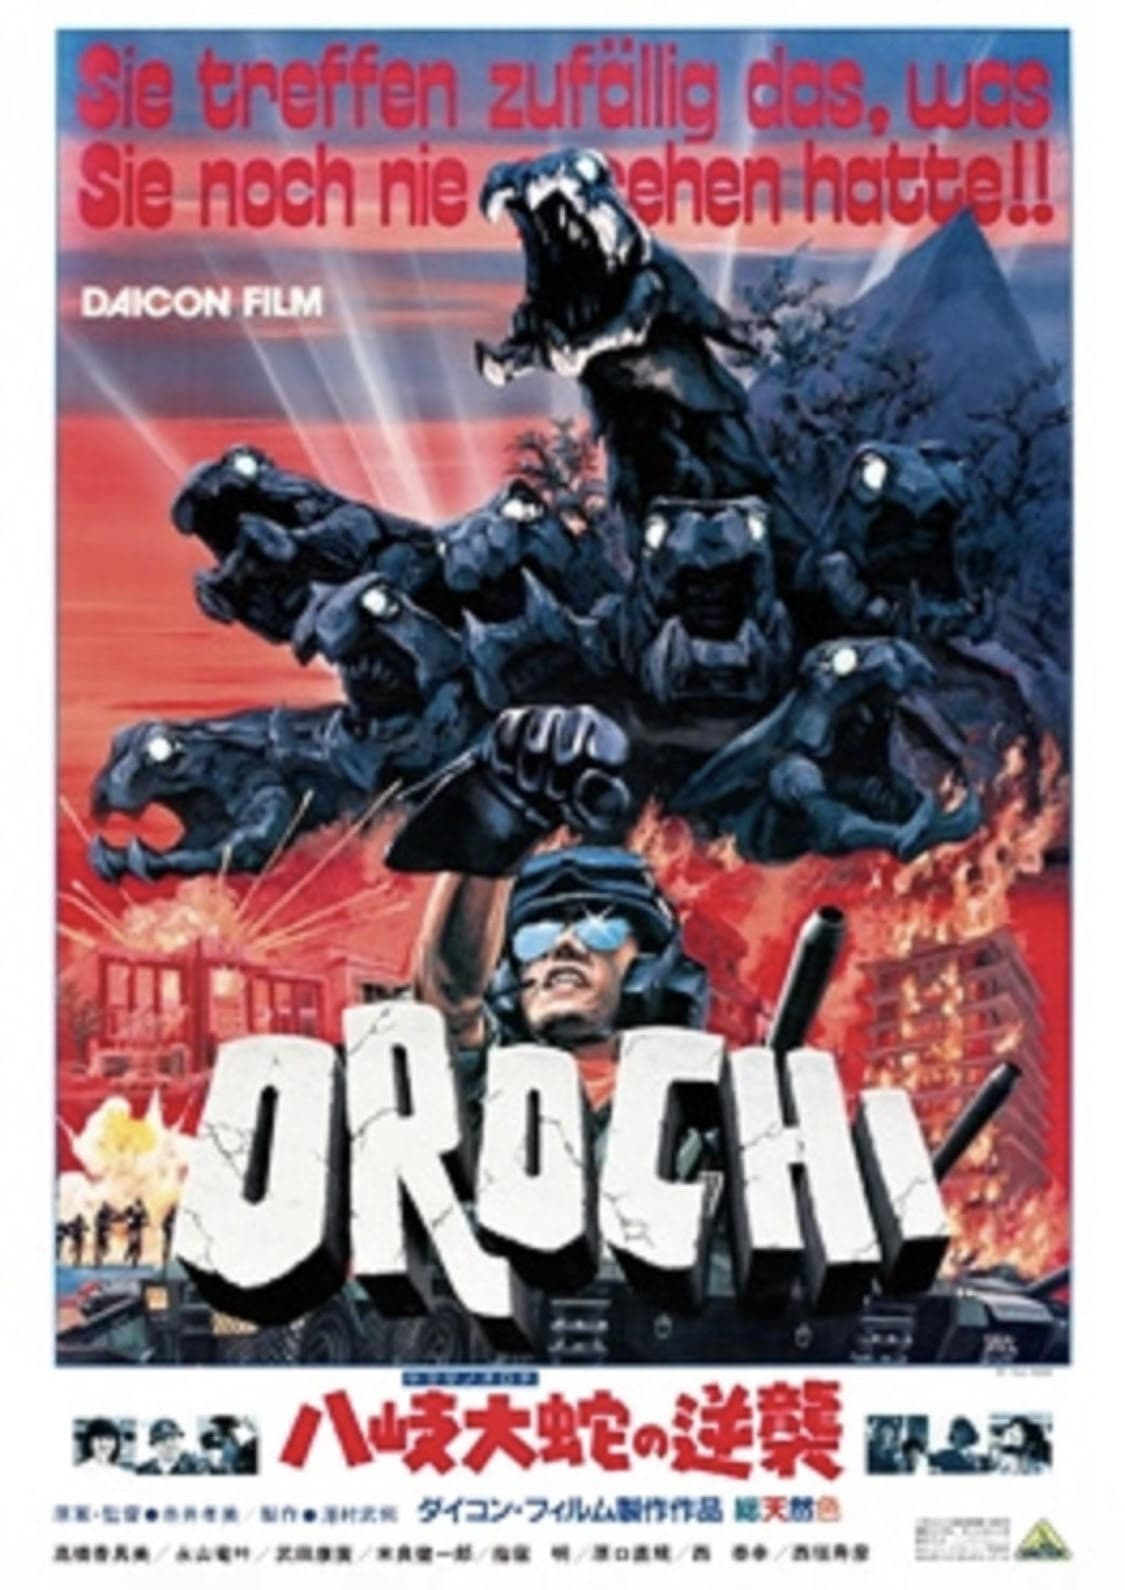 Orochi Strikes Again (1985)